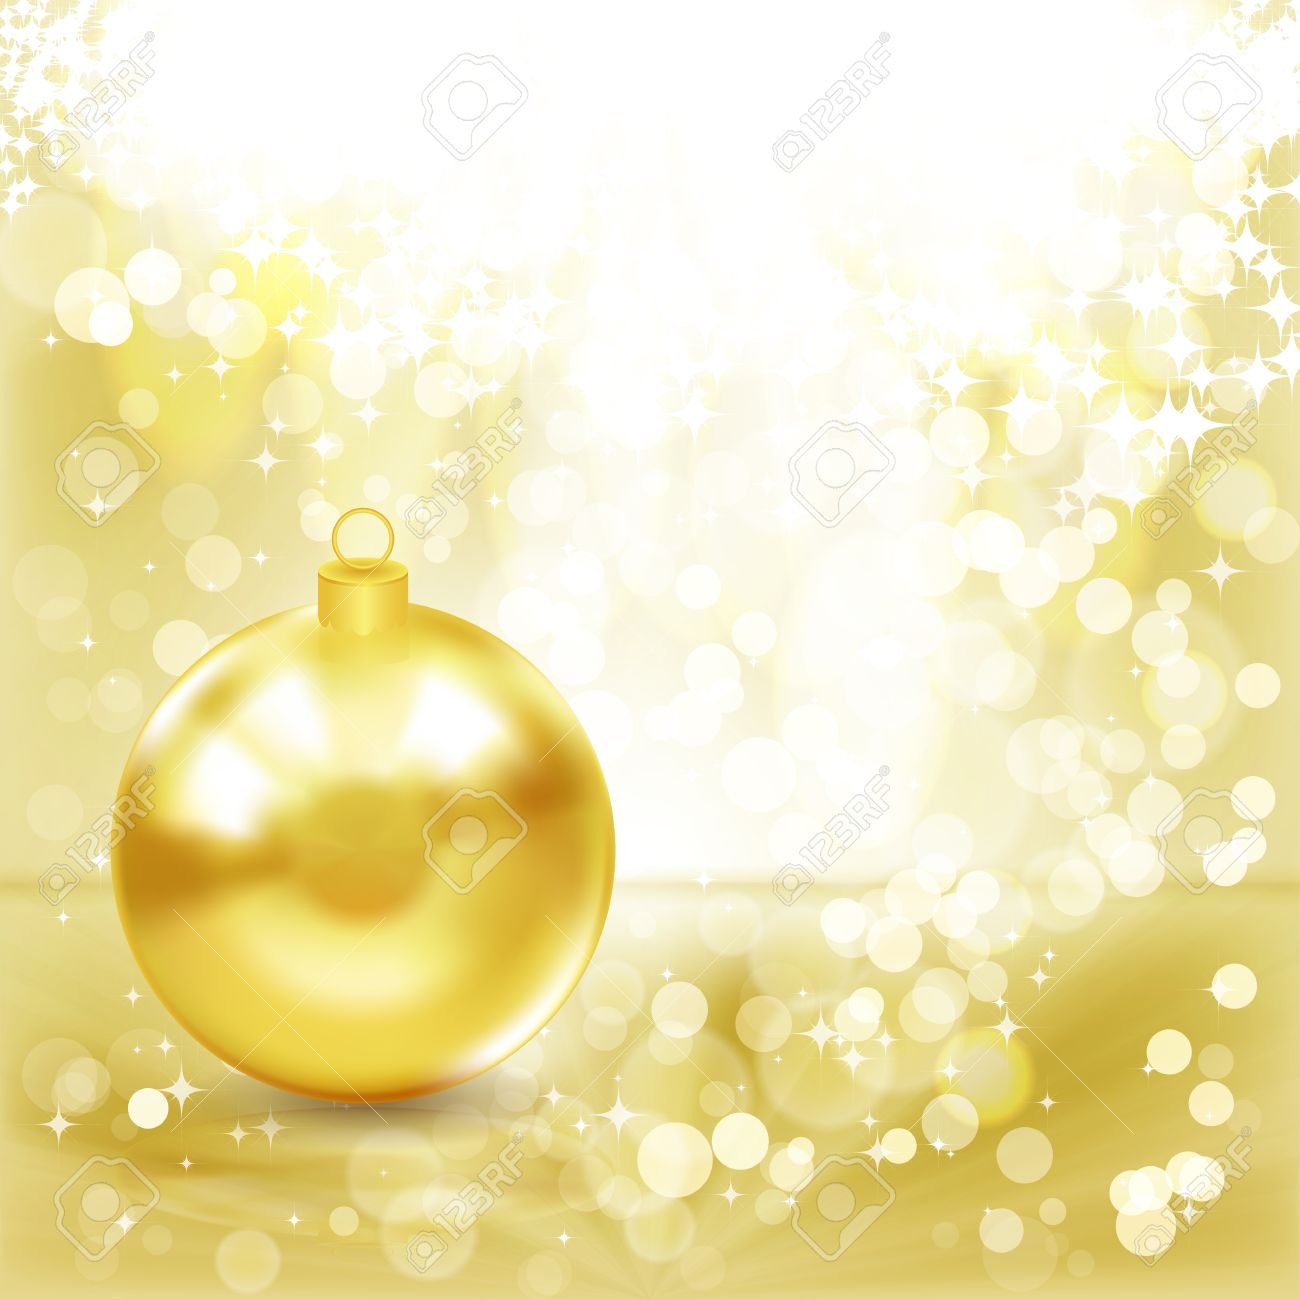 Gold Christmas ball on a golden light background. Stock Photo - 11261793